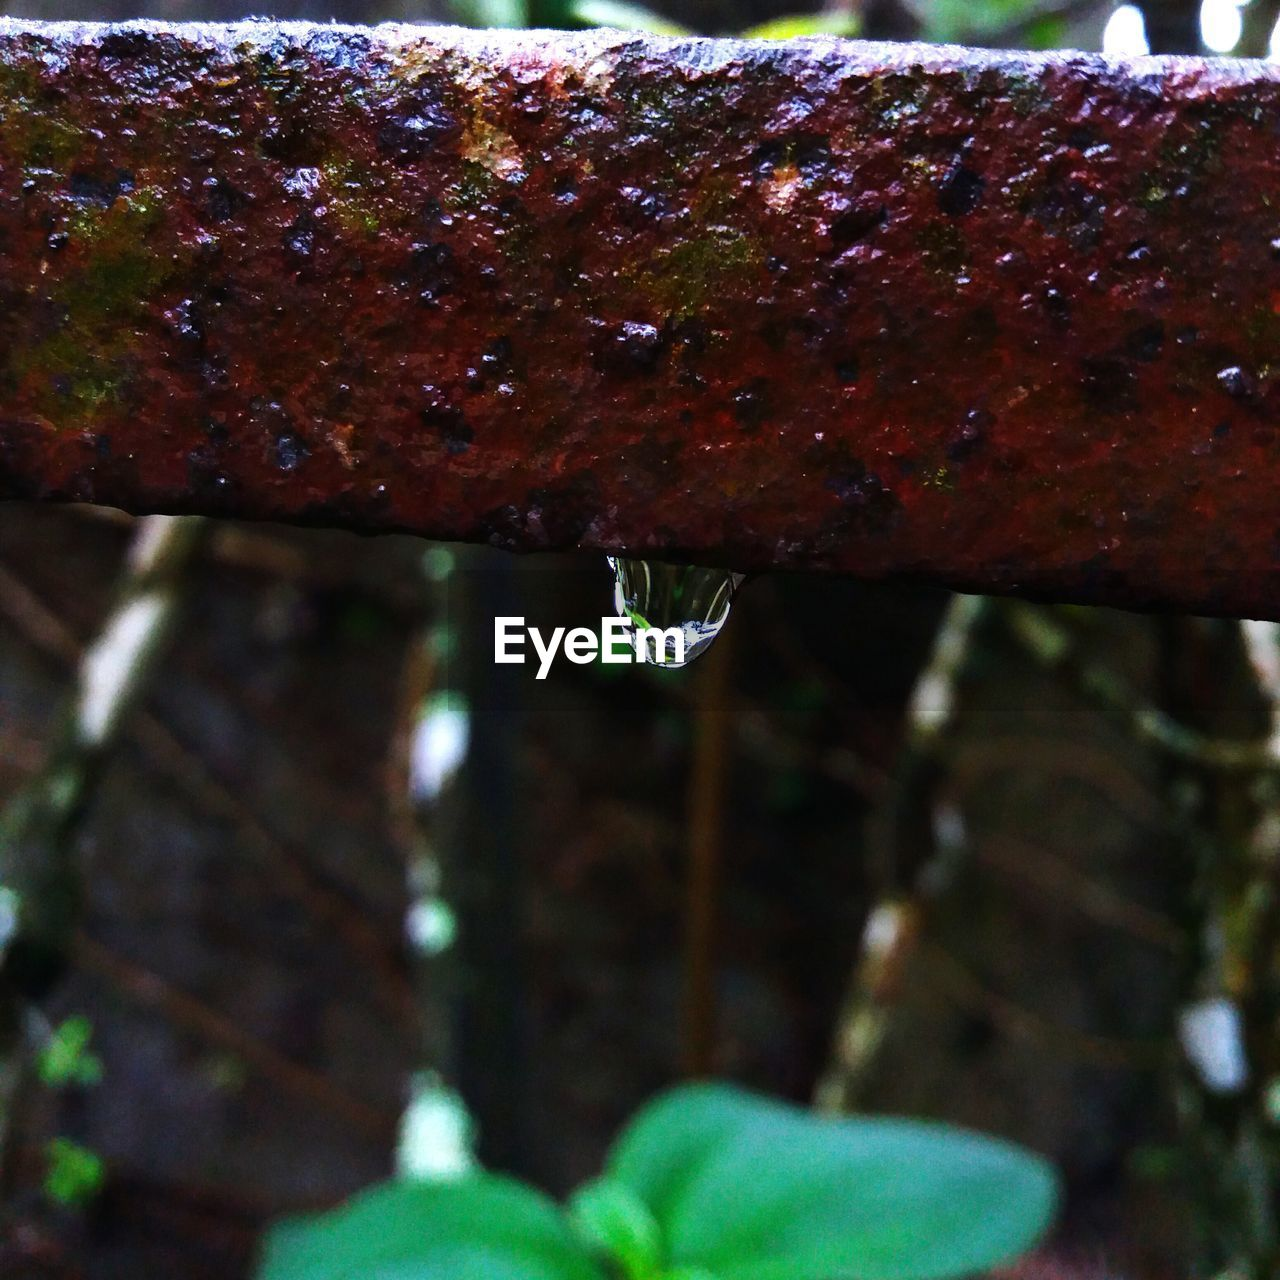 drop, close-up, no people, day, nature, water, outdoors, growth, leaf, beauty in nature, freshness, animal themes, dripping